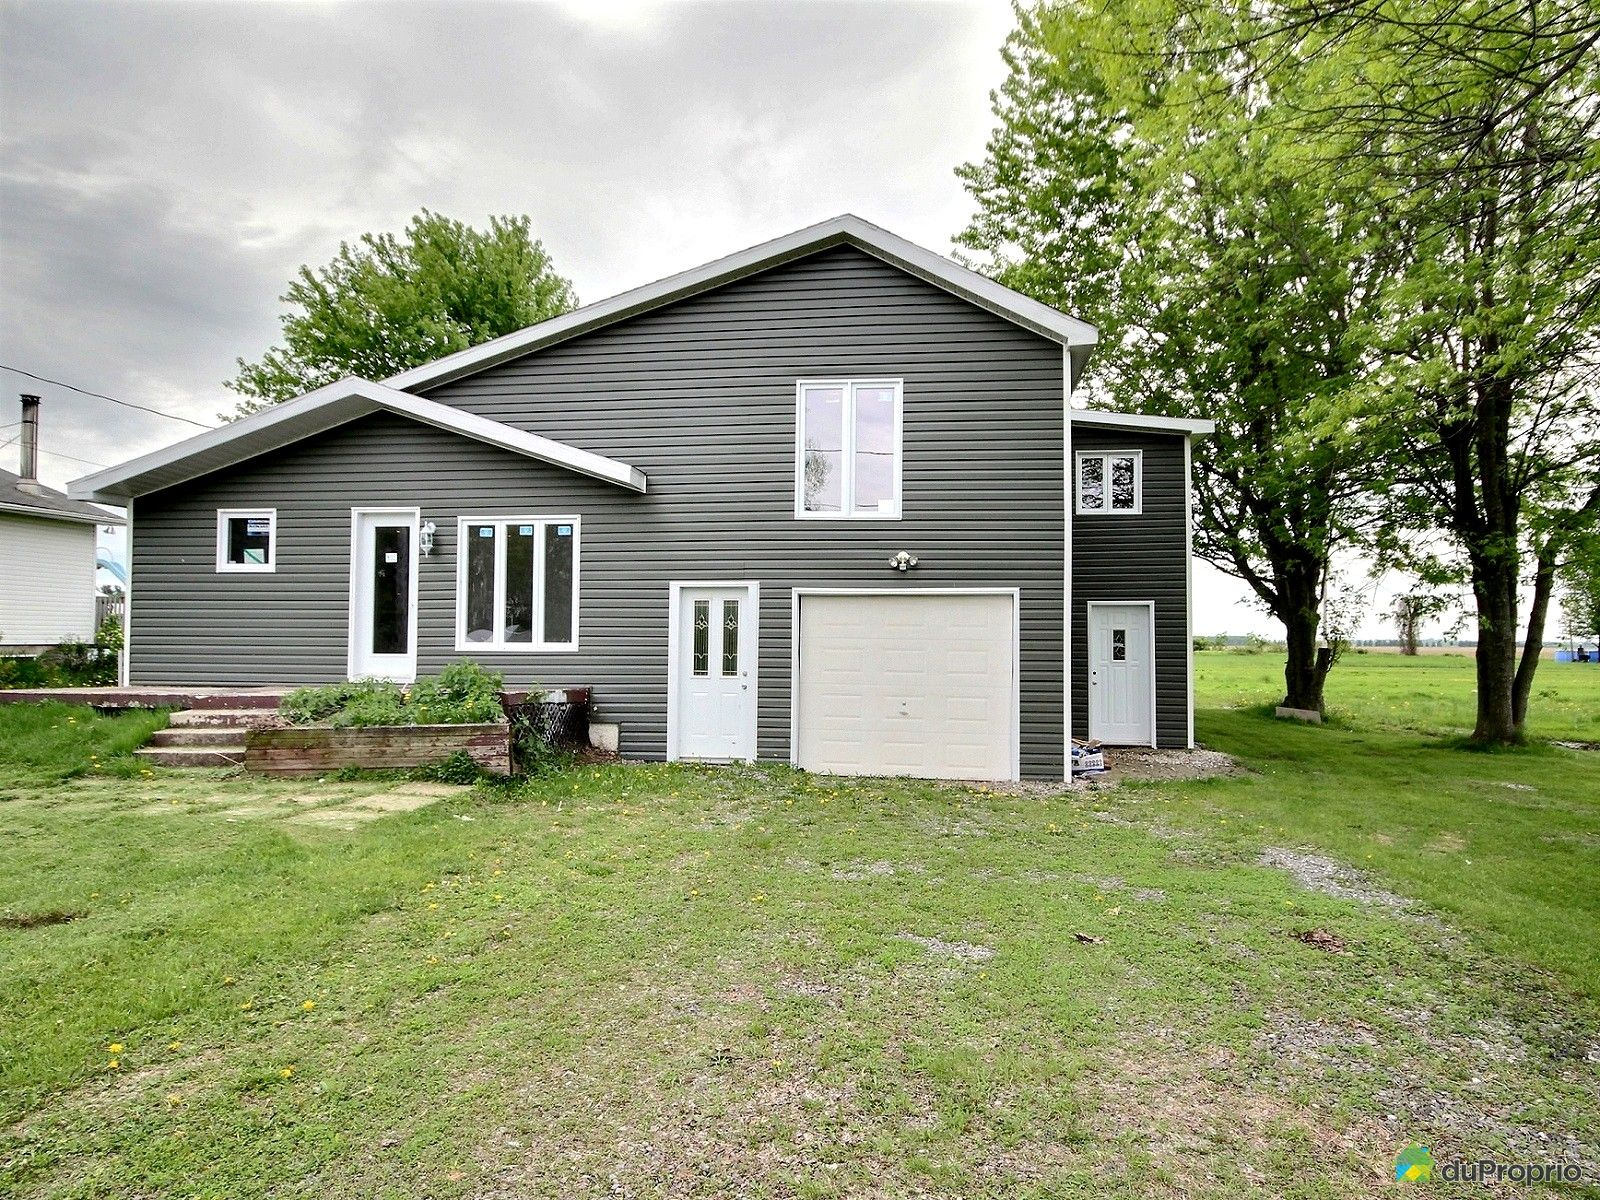 328 rue Champlain, Henryville for sale | DuProprio